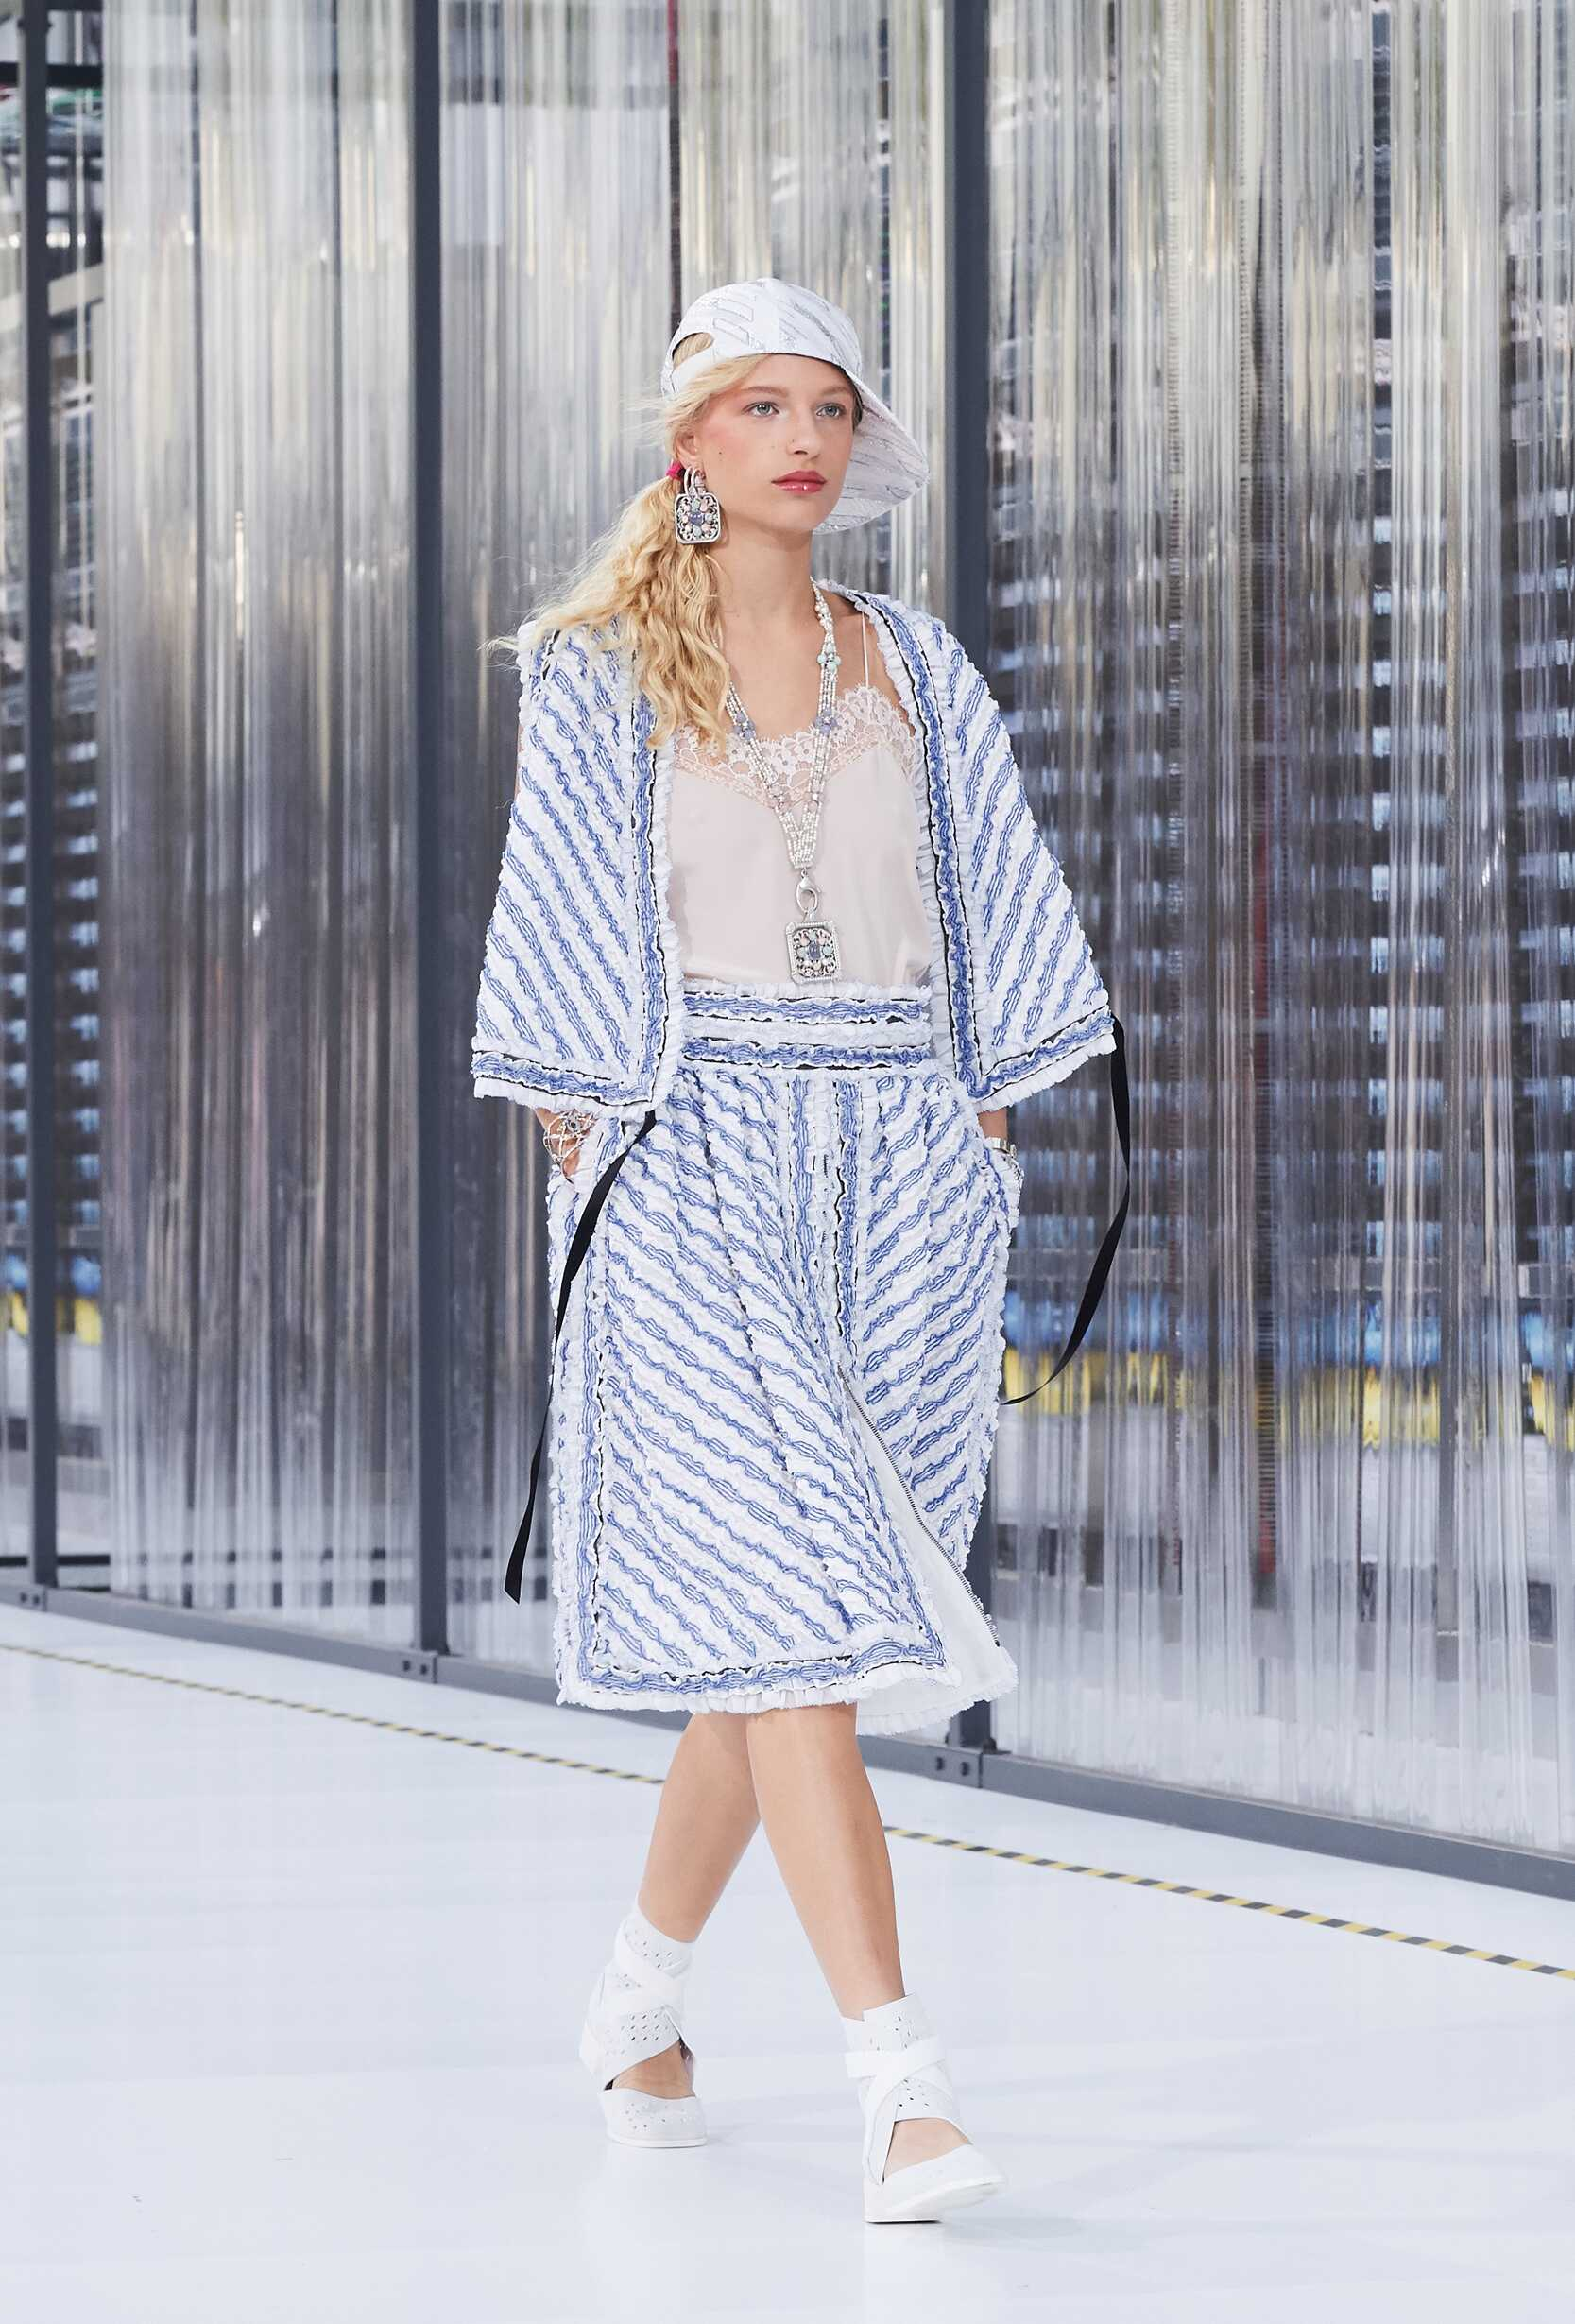 Woman Fashion 2017 Womens Style Chanel